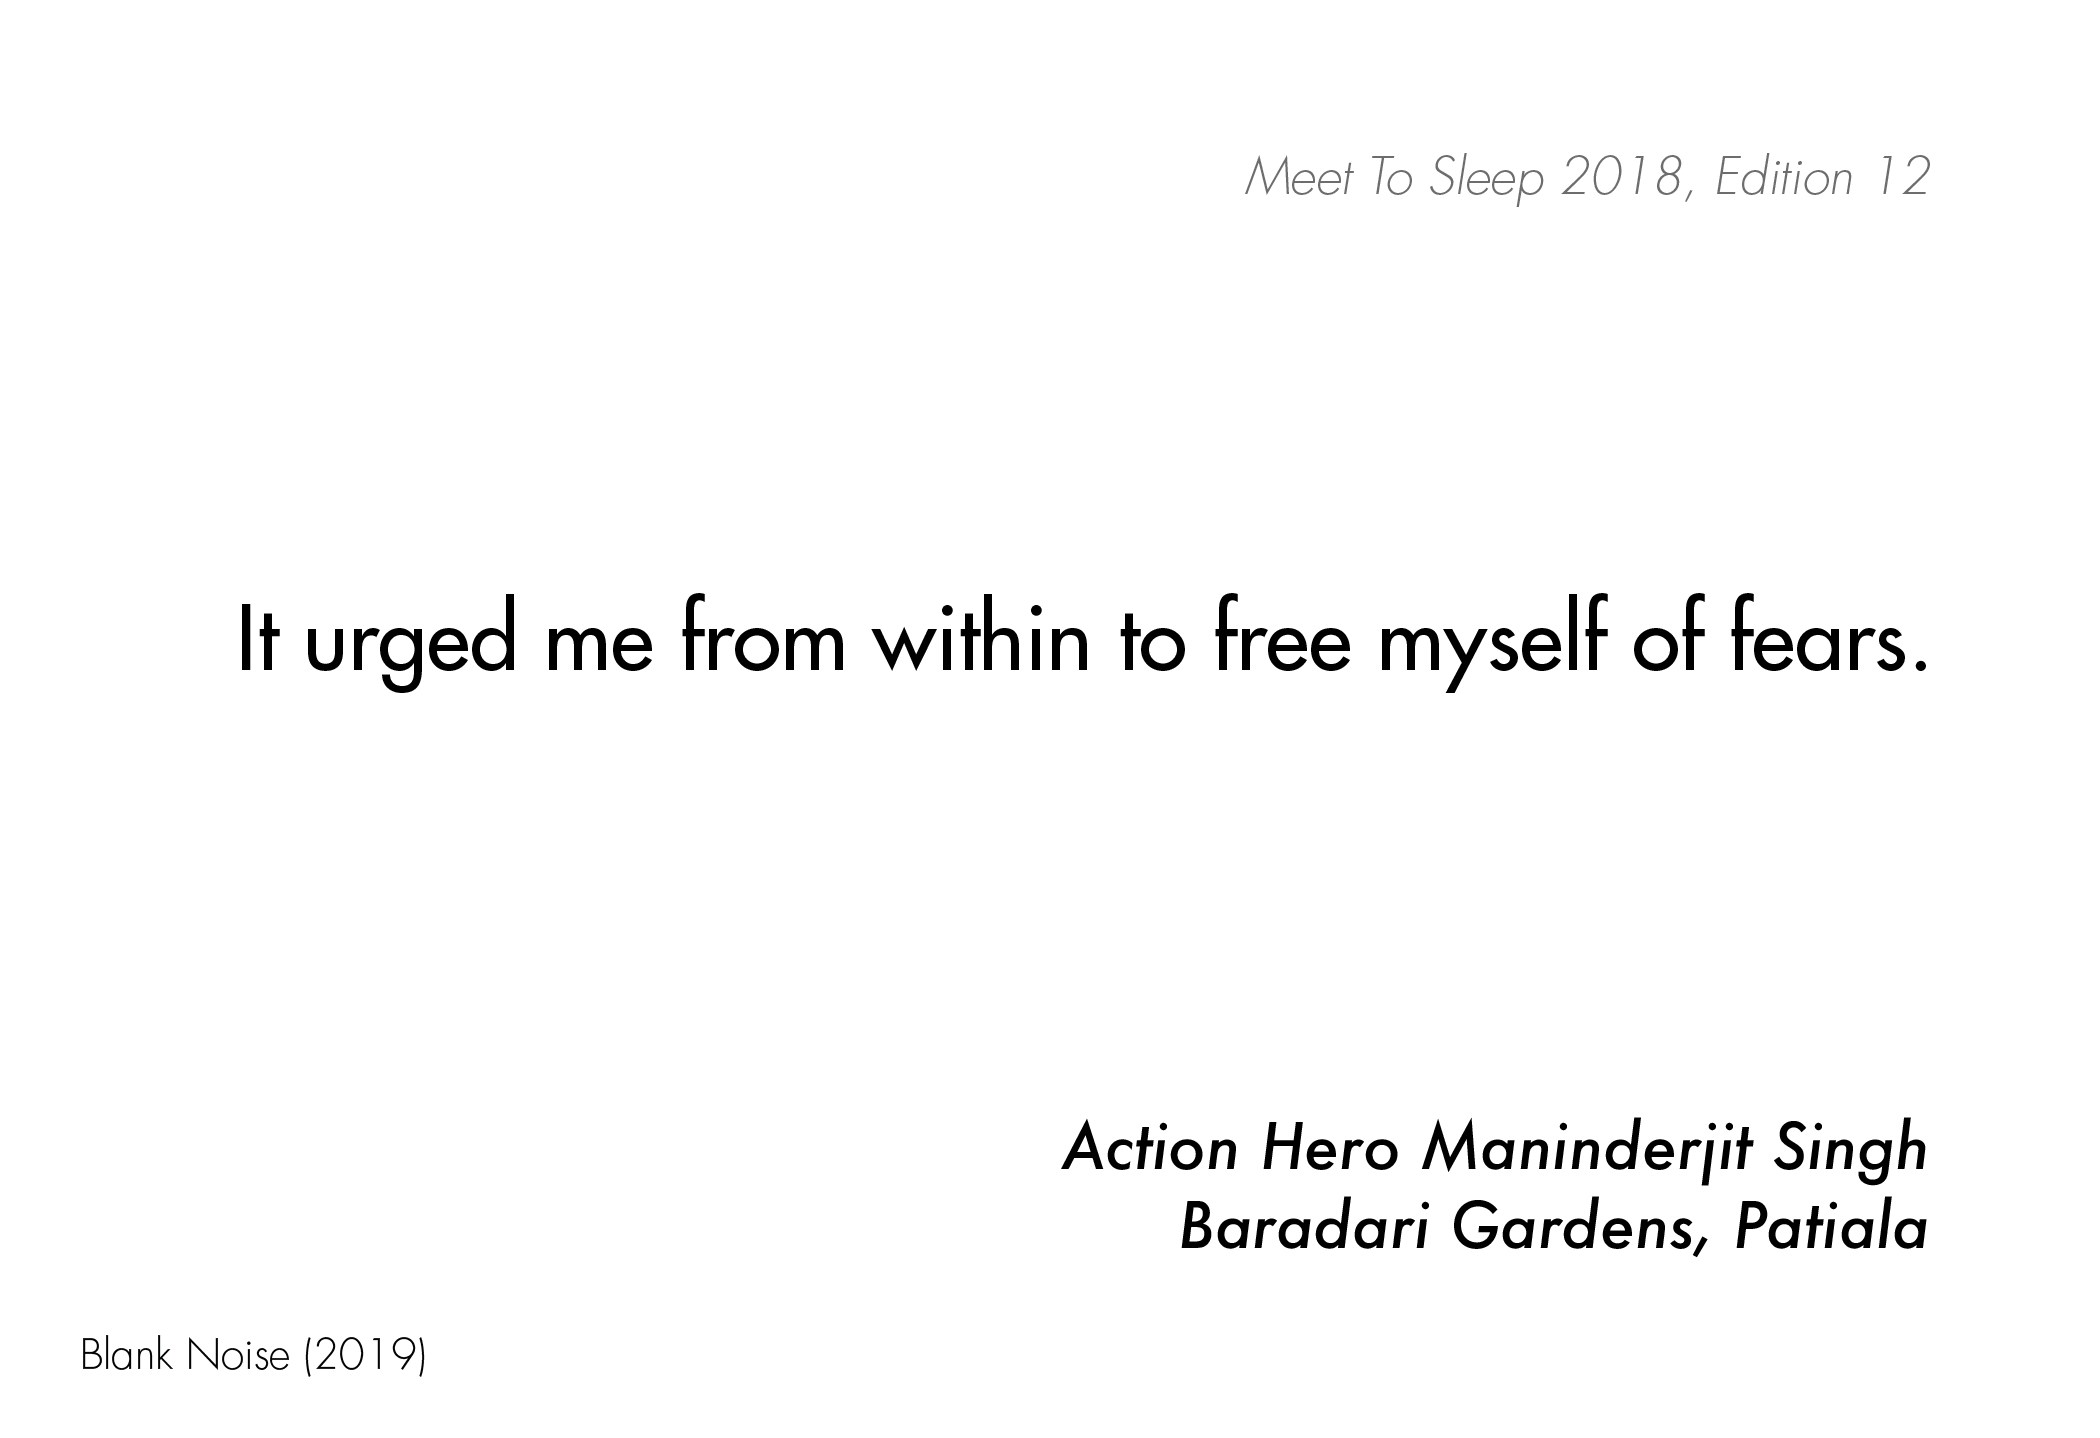 MTS 2018 Quotes -19.png